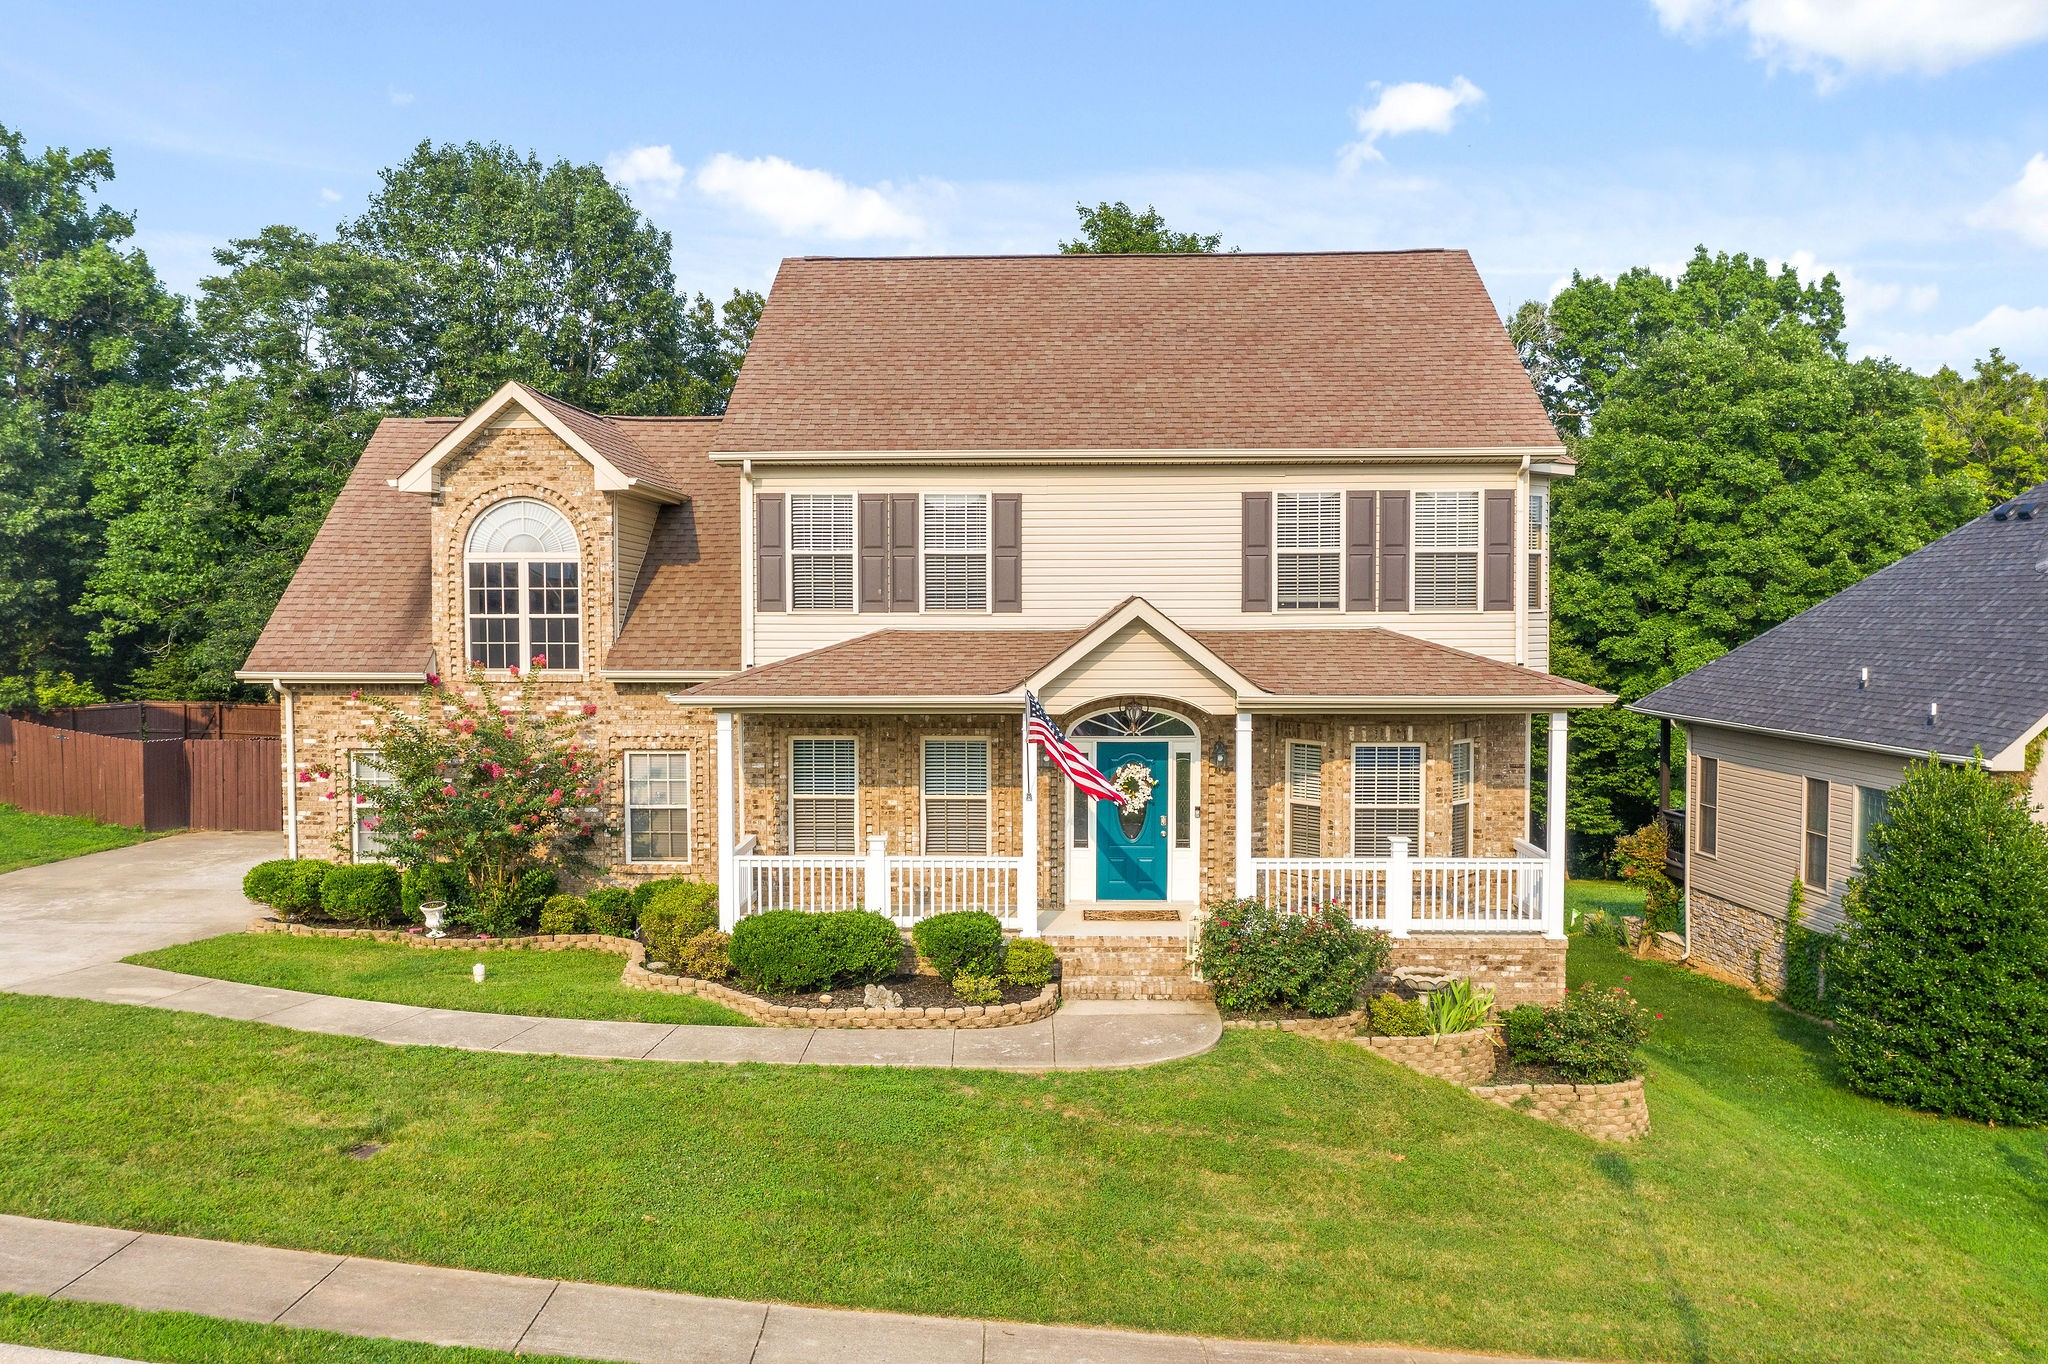 Rossview school district location! Minutes from Exit 8 off I-24. Beautiful contemporary 4 bedroom, 2.5 bath home with huge bonus/5th Bedroom. Backs up to the Red River and no backyard neighbors. Fireplace splits den and great room. Covered Back Deck w/privacy fenced yard.